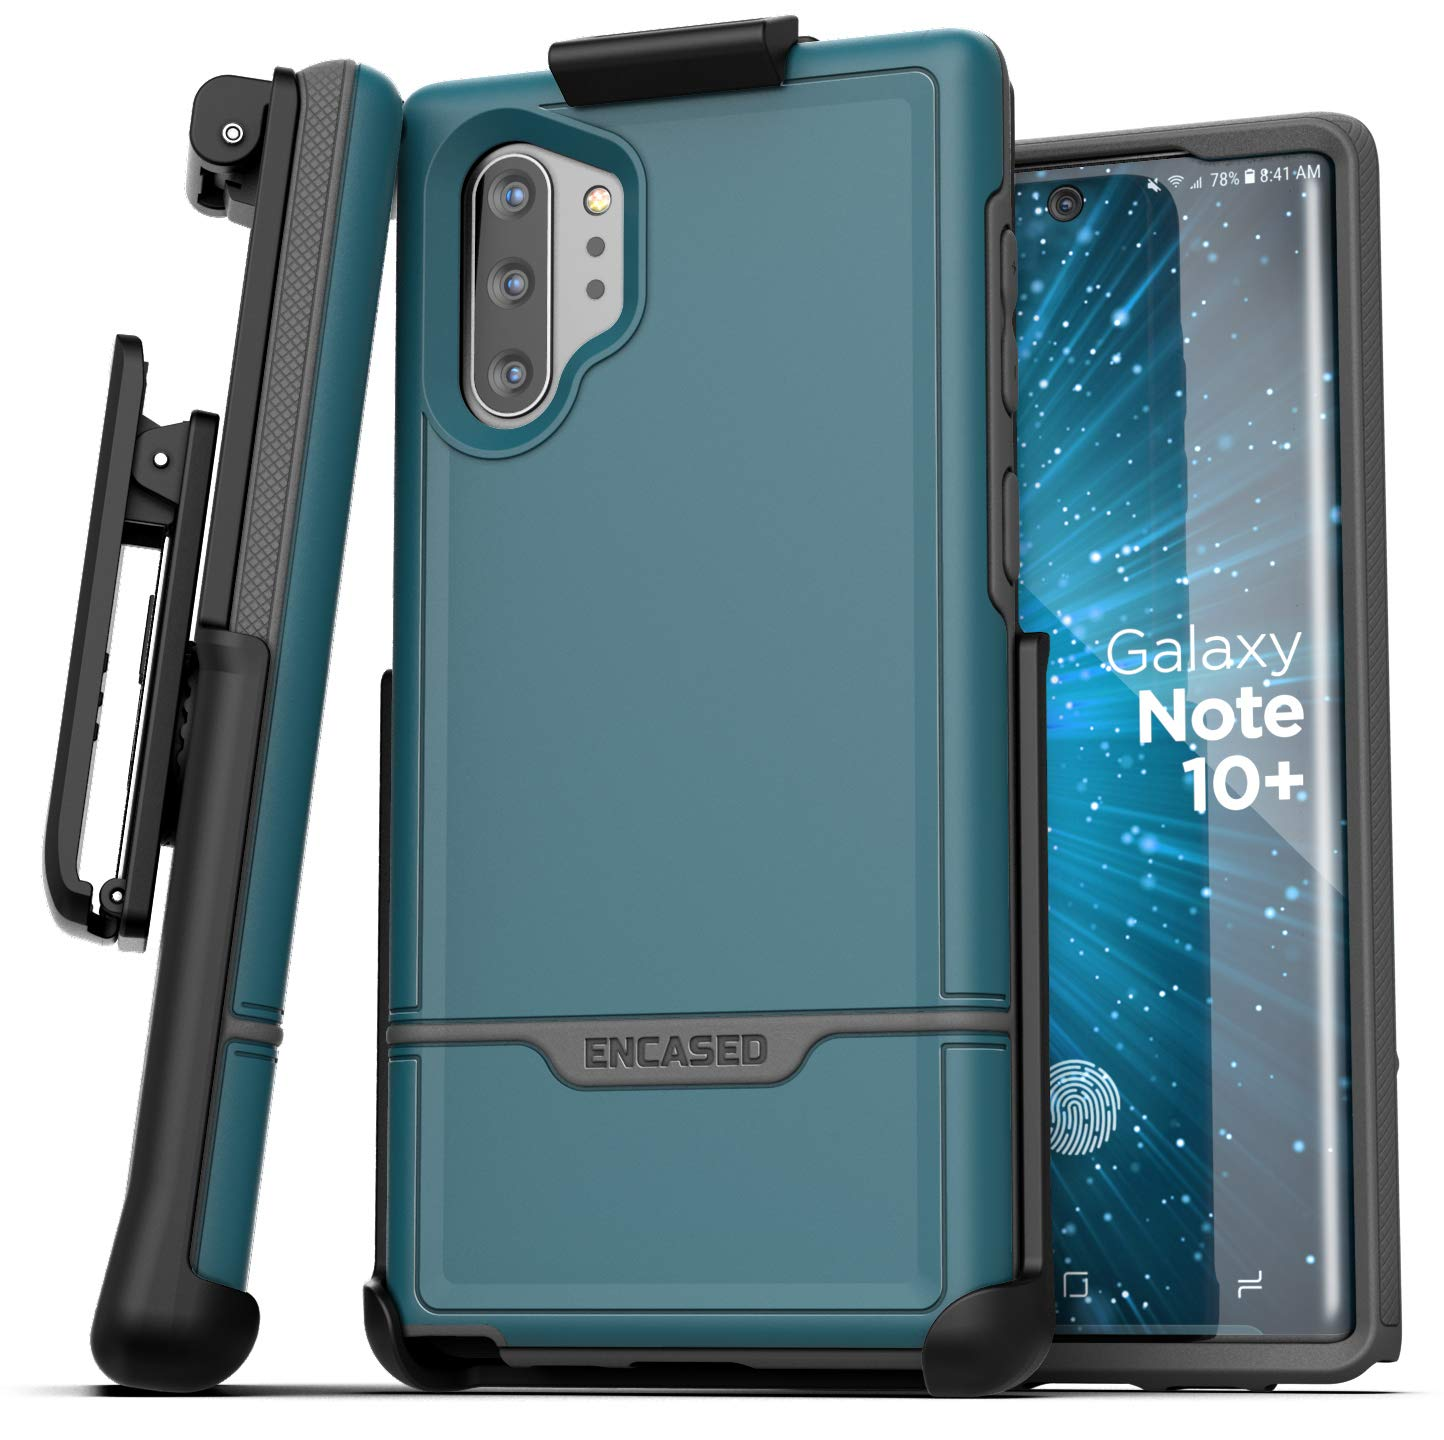 Encased Galaxy Note 10 Plus Belt Clip Protective Holster Case (2019 Rebel Armor) Heavy Duty Rugged Full Body Cover with Holder Ocean Blue (Samsung Note 10+) by Encased